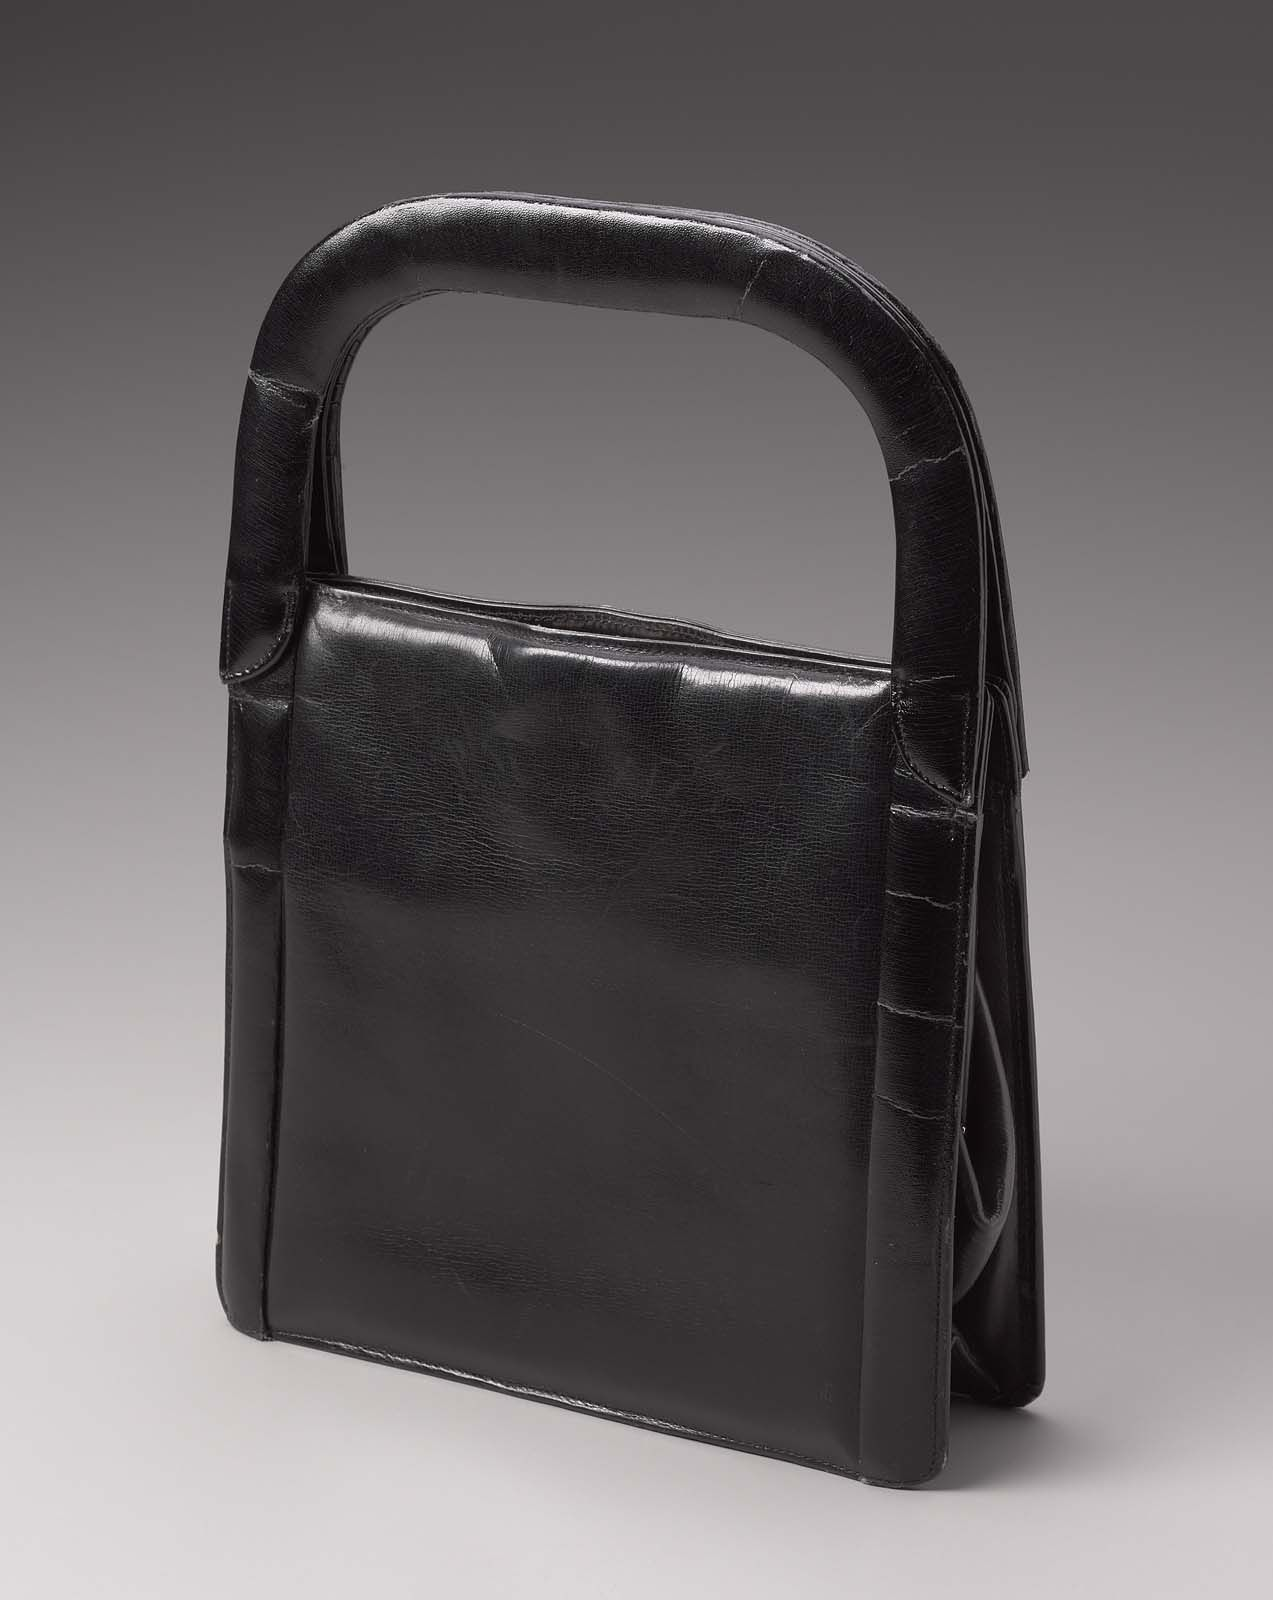 f7c013fe3da8 Black leather rectangular handbag with beige suede lining and leather  handle